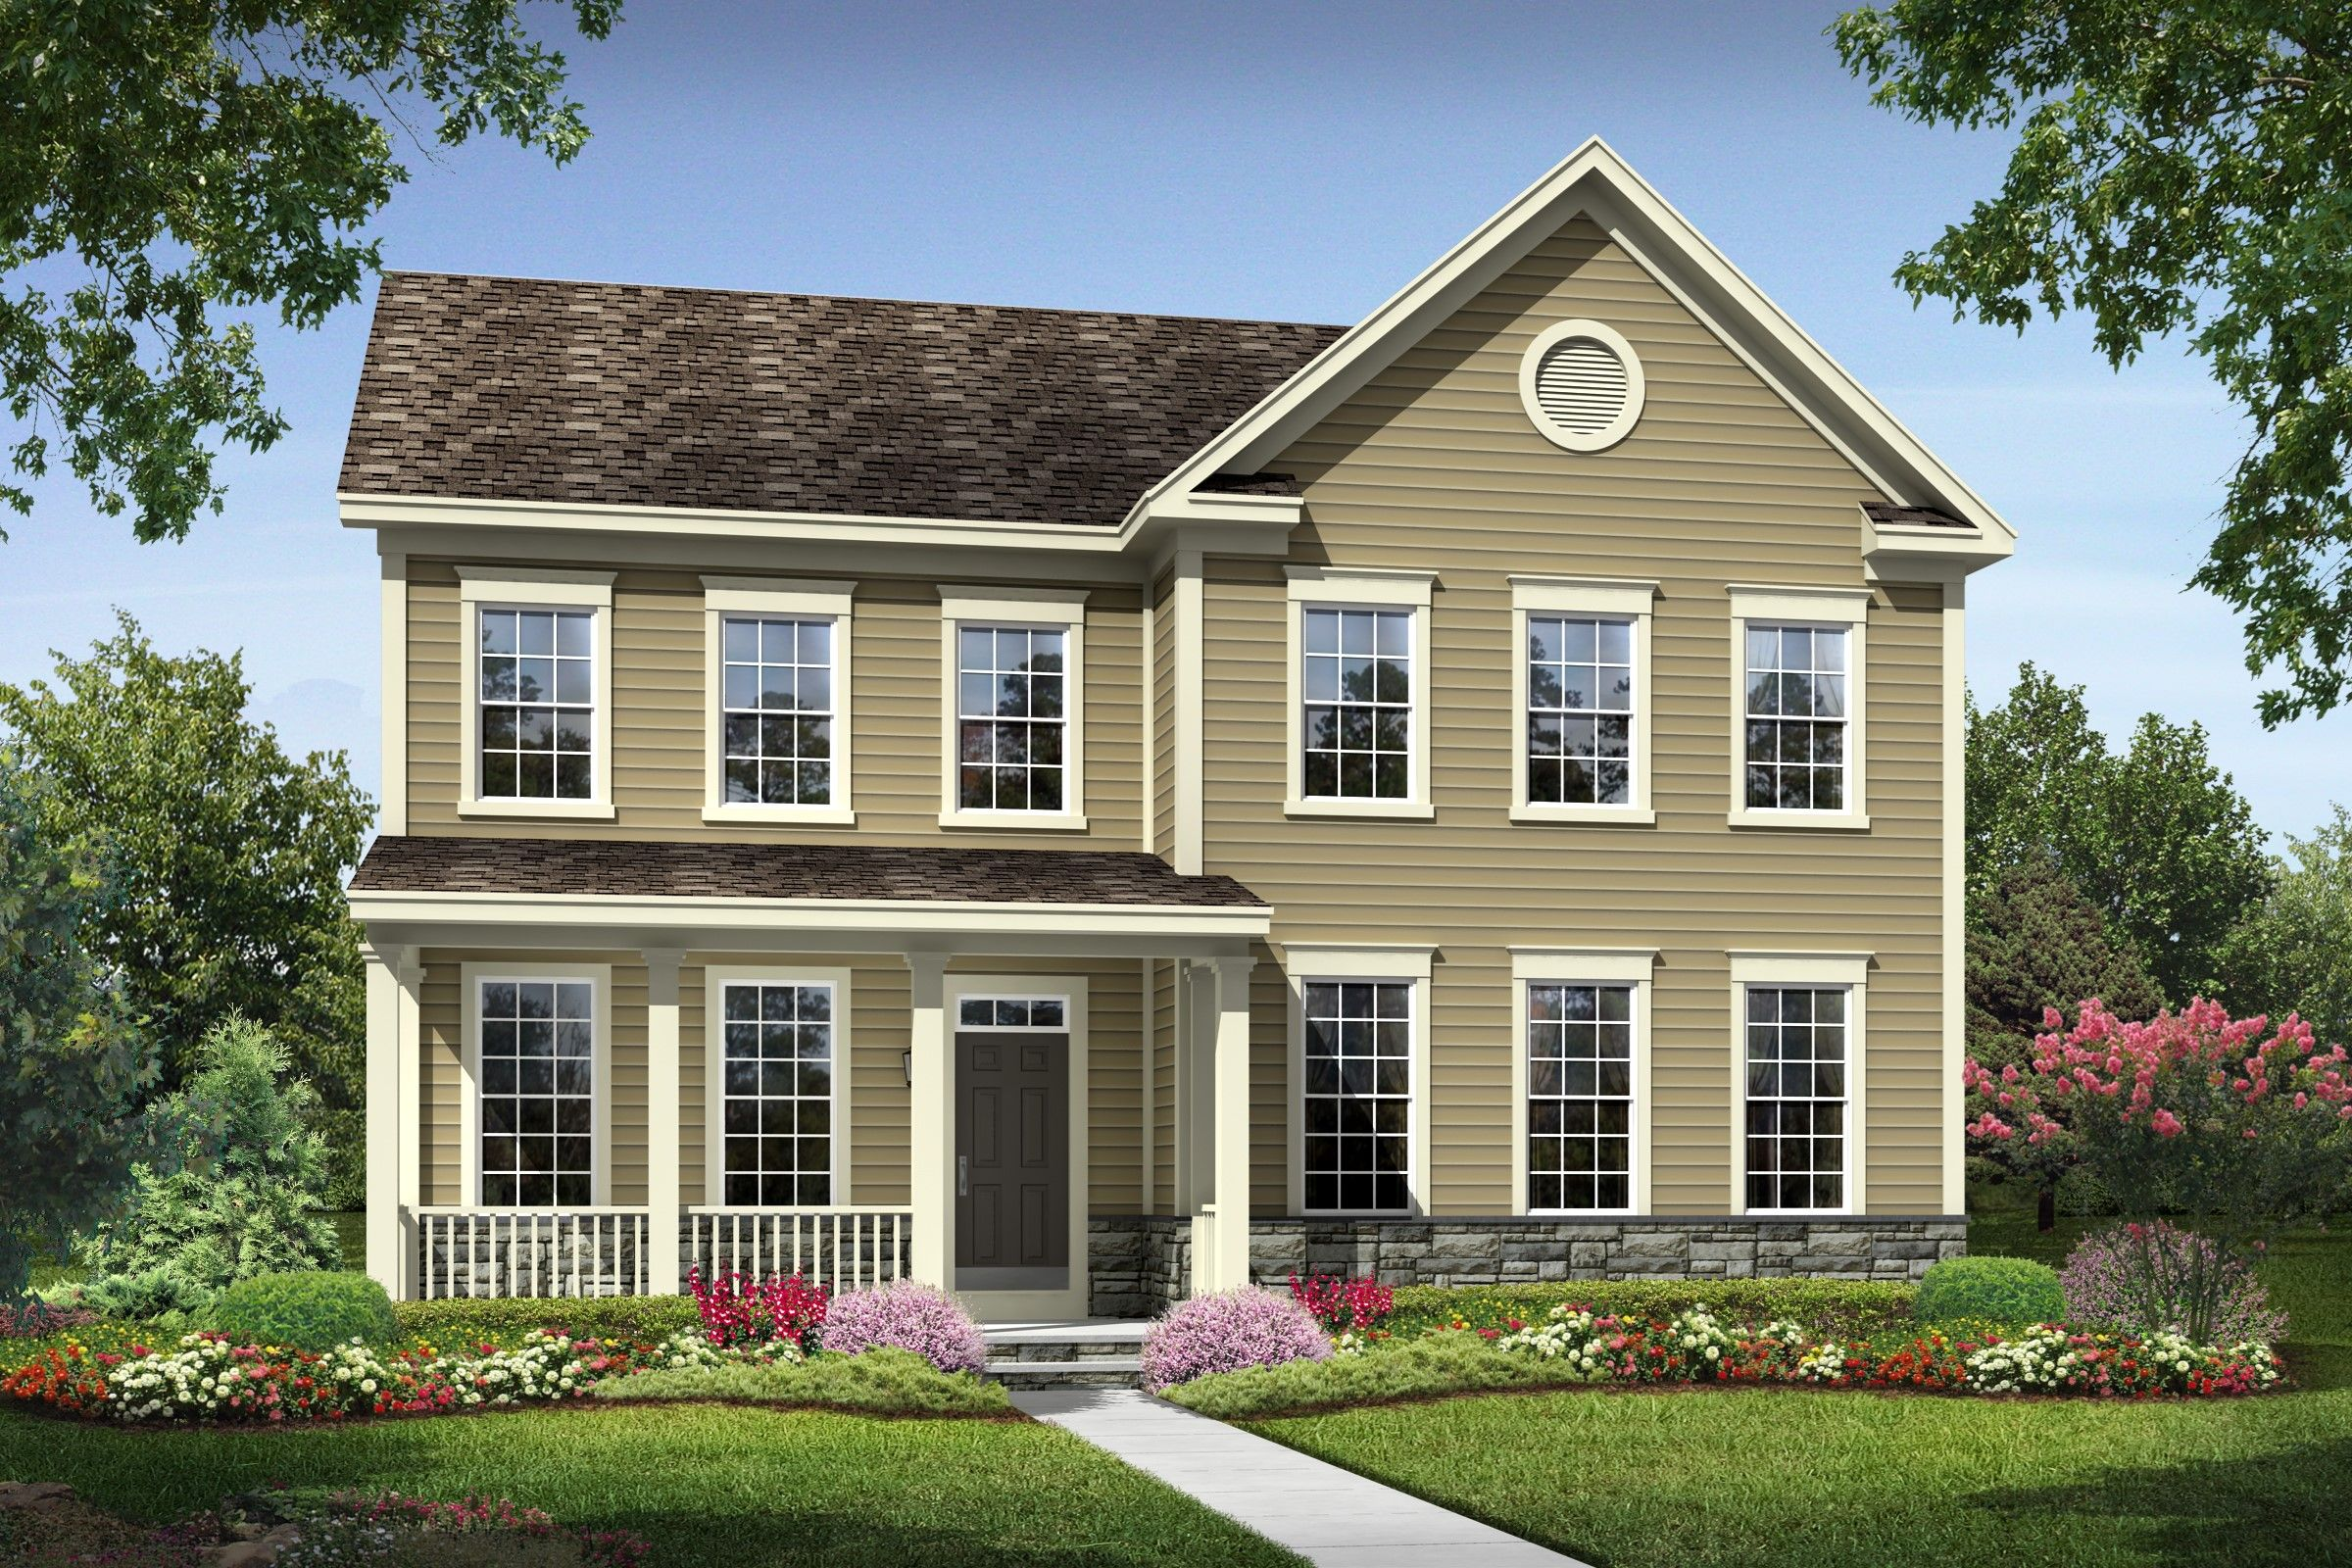 K hovnanian r homes embrey mill cooper 1196308 for Modern homes for sale in virginia